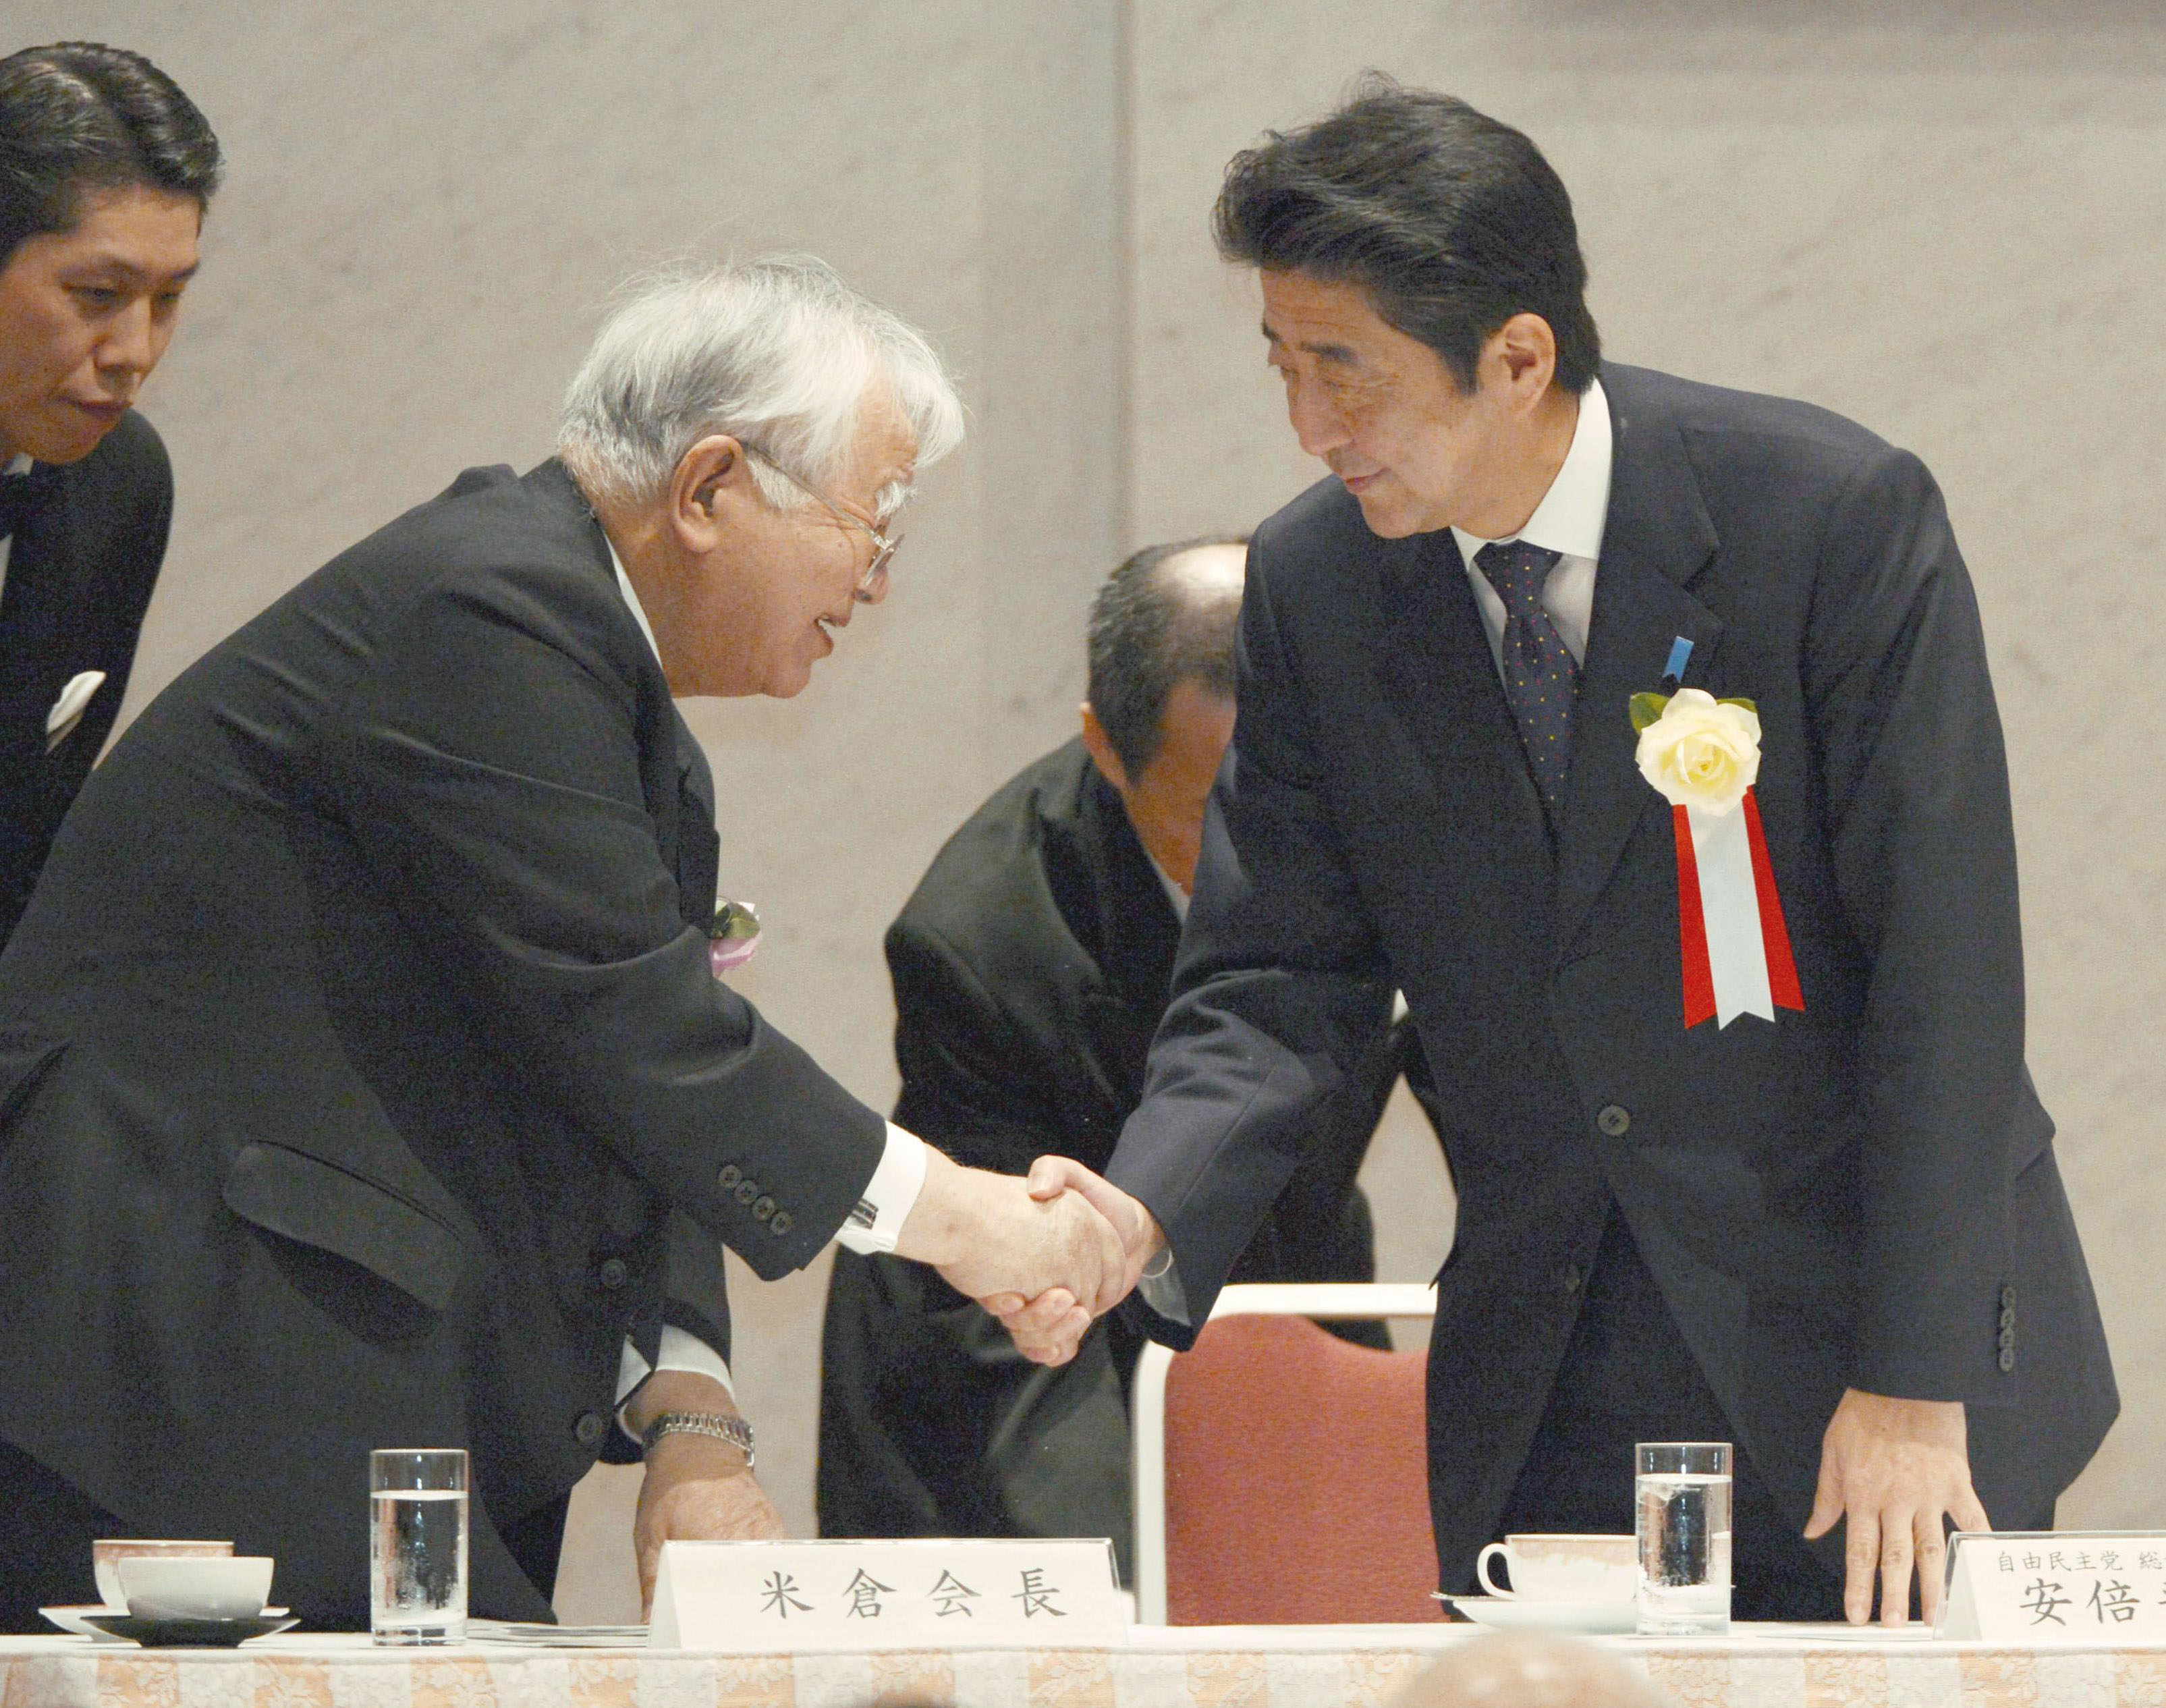 Abe hoopla aside, key economic challenges loom